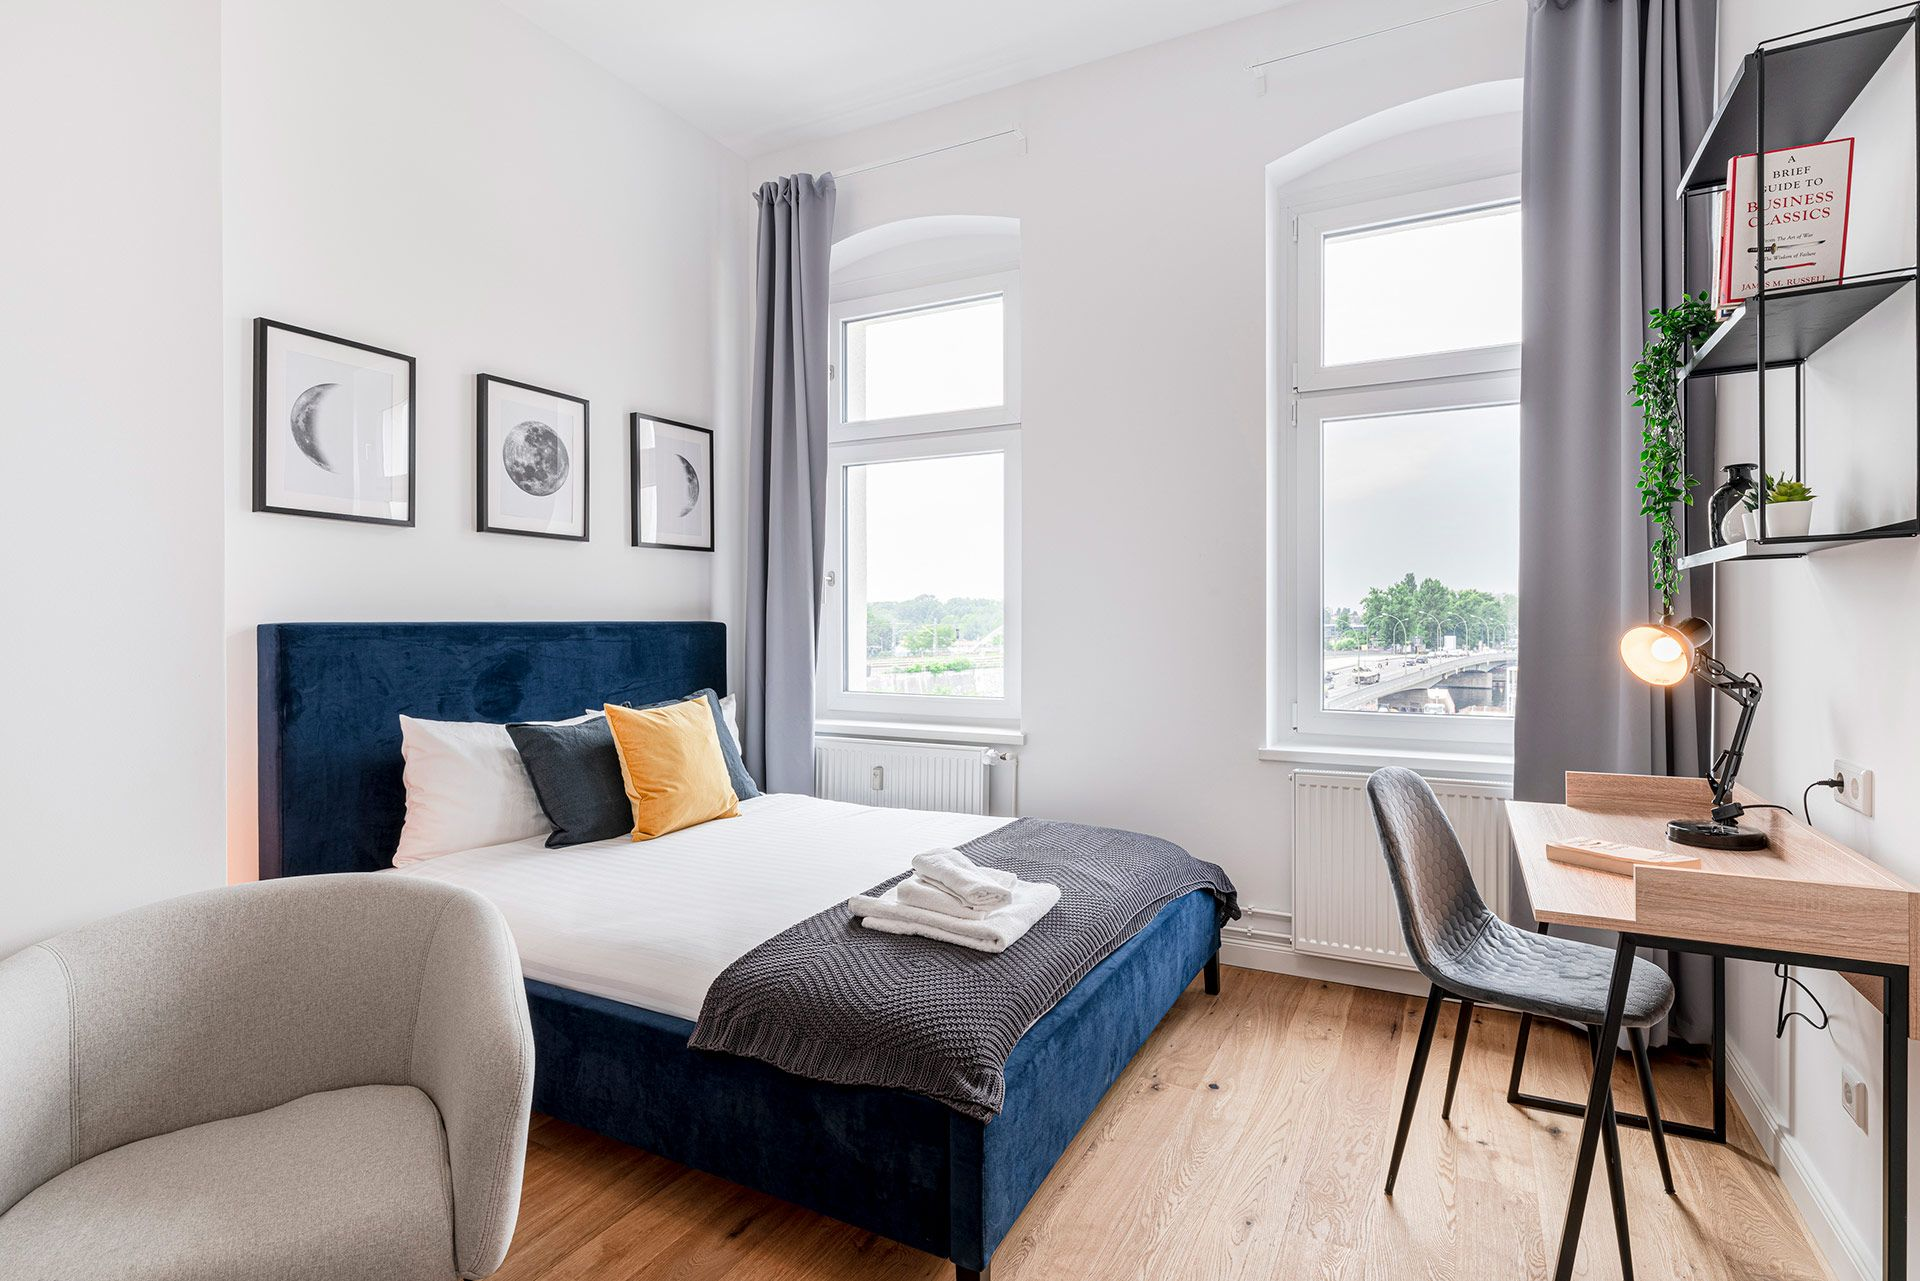 Private Room - Medium apartment to rent in Berlin STRA-STRA-1115-1